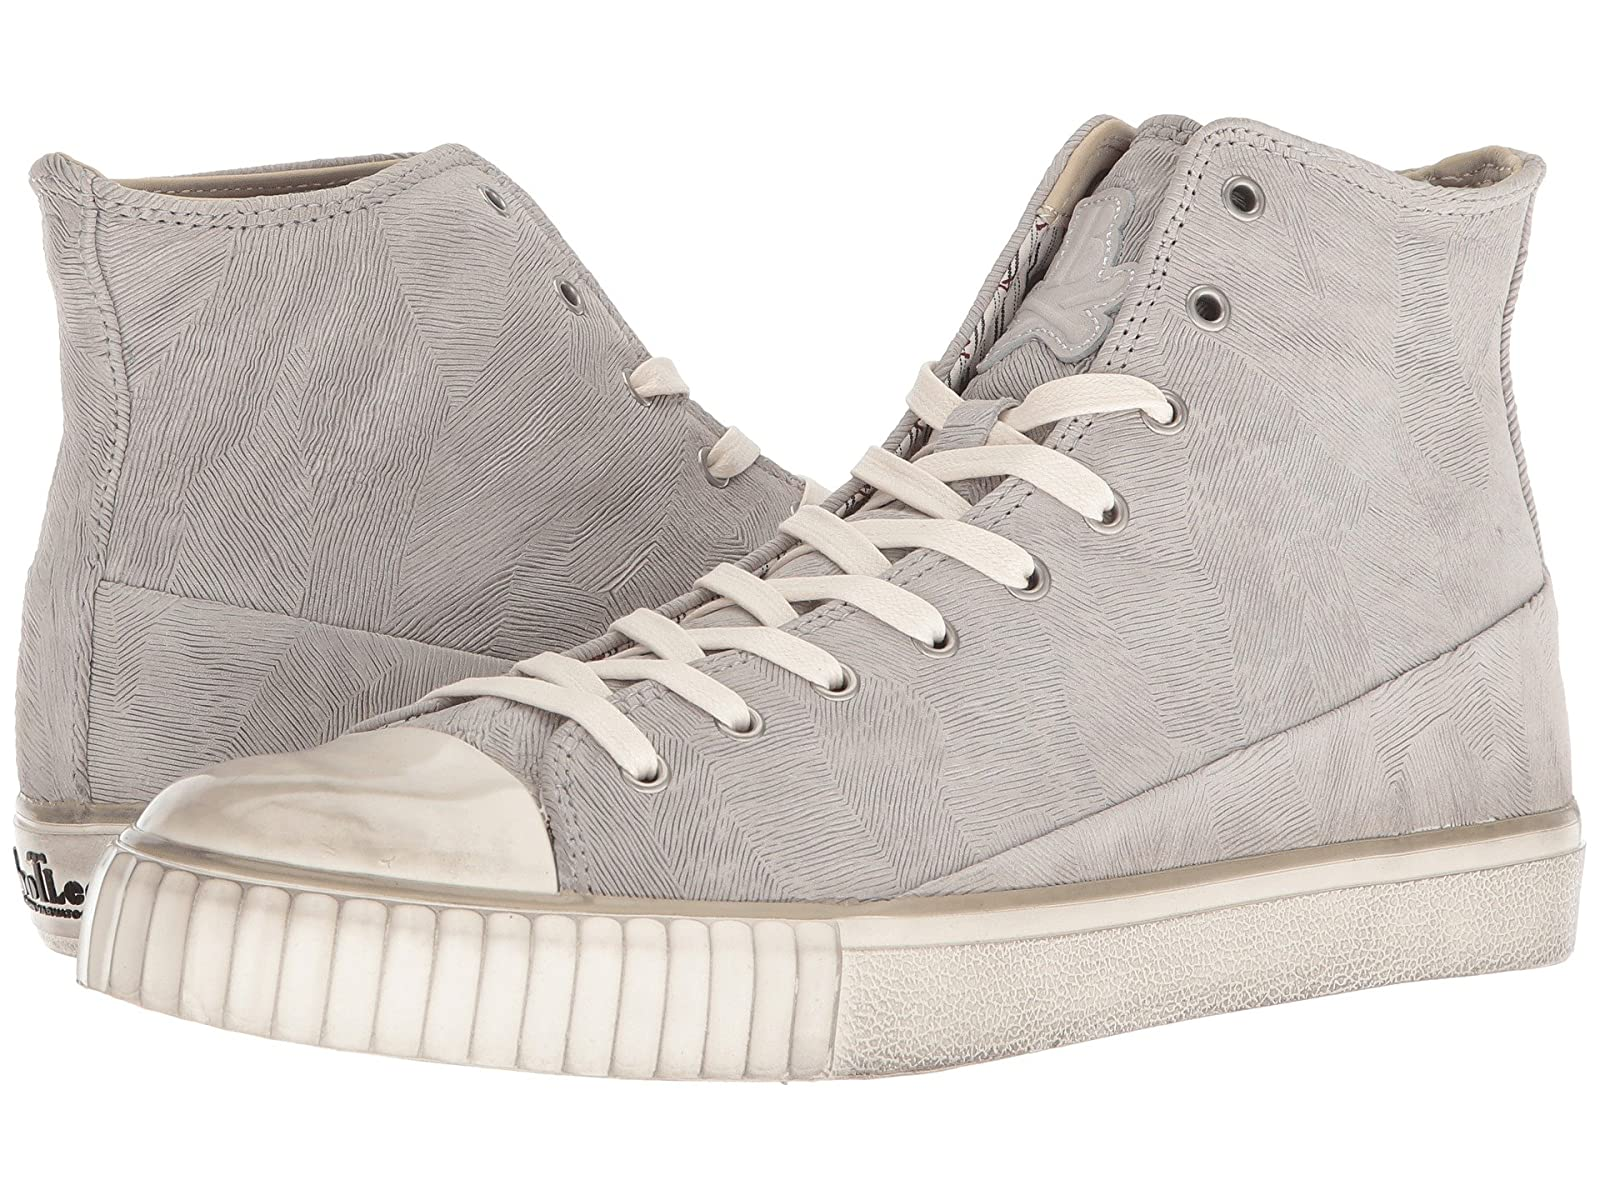 John Varvatos Mid TopAtmospheric grades have affordable shoes